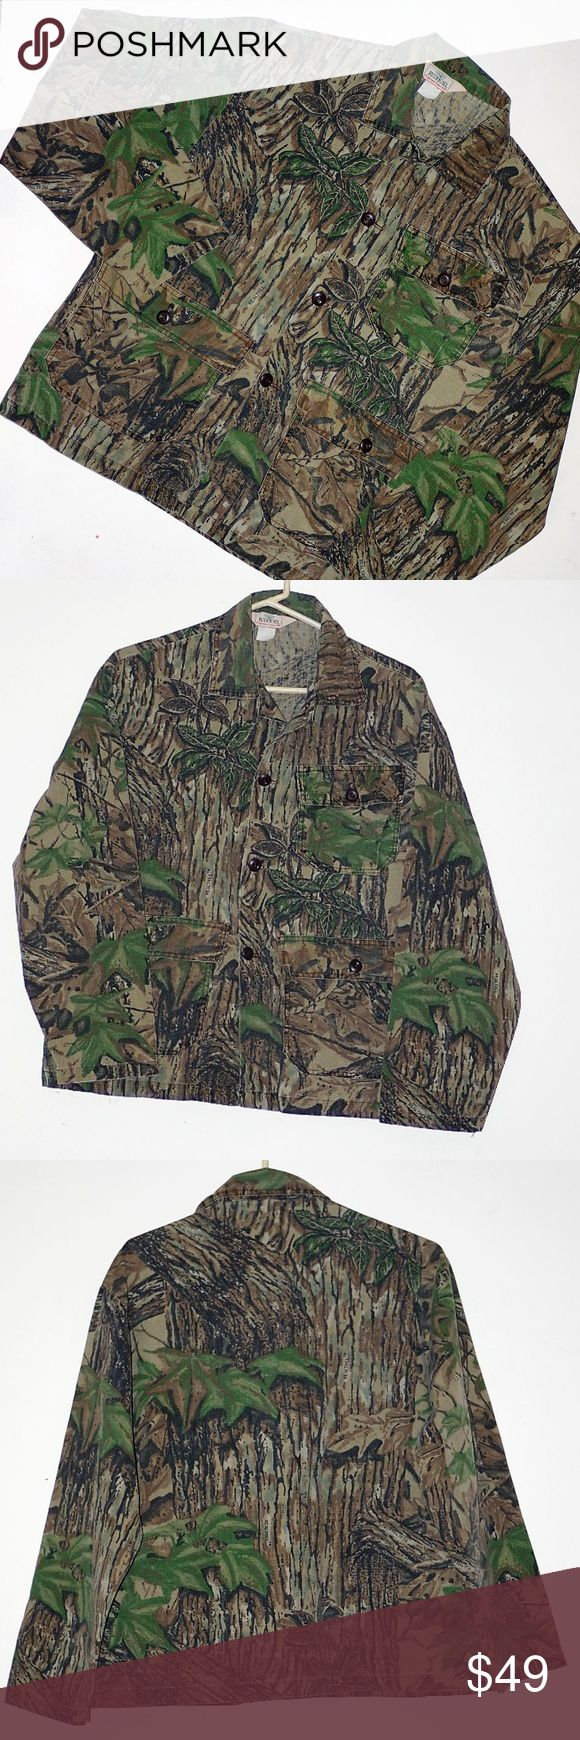 "Camo Shirt Jacket Realtree Vintage Redhead Women L Camo Shirt Jacket Realtree Vintage Redhead Women L By REDHEAD Realtree Graphics Camo Shirt Jacket Unisex  Mens Medium Womens Large Short Length 28"" Shoulders: 20"" Underarms seam to seam: 24"" Sleeve: Center shoulder seam to wrist: 23"" Vintage Pre Loved a bit of fading adds to it's charm Perfect for the Hunter or casual wear Vintage Redhead Jackets & Coats Jean Jackets"